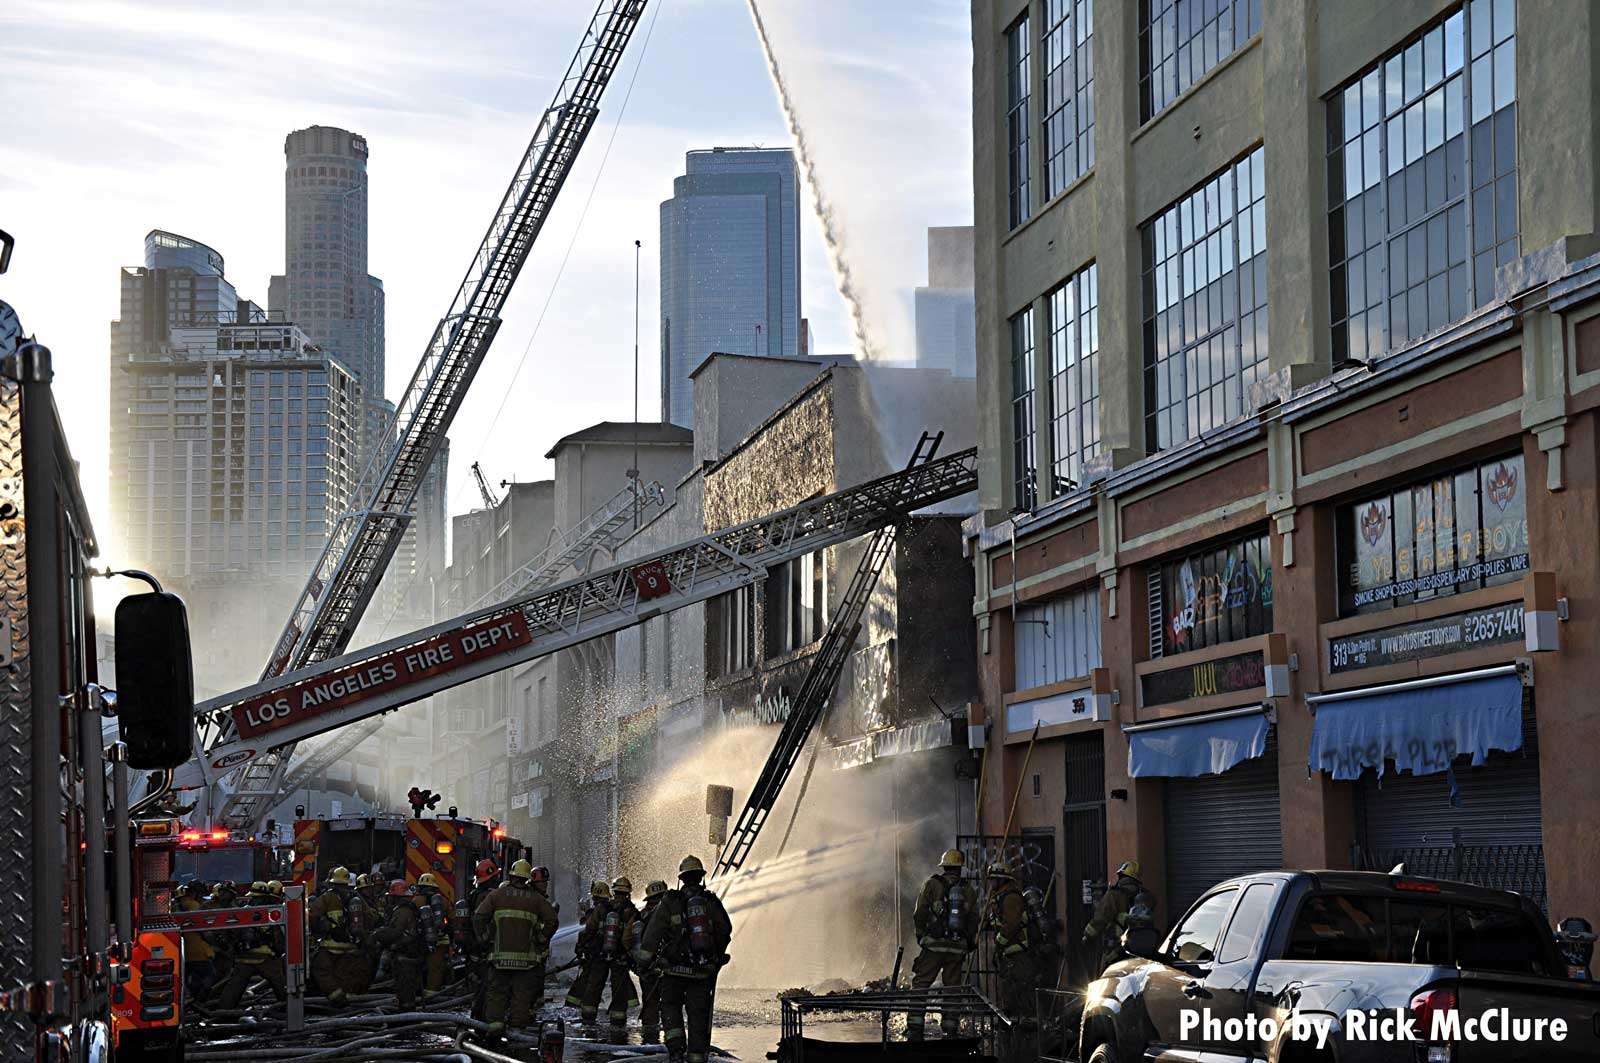 City of Los Angeles fire apparatus and firefighters at the scene of the explosion